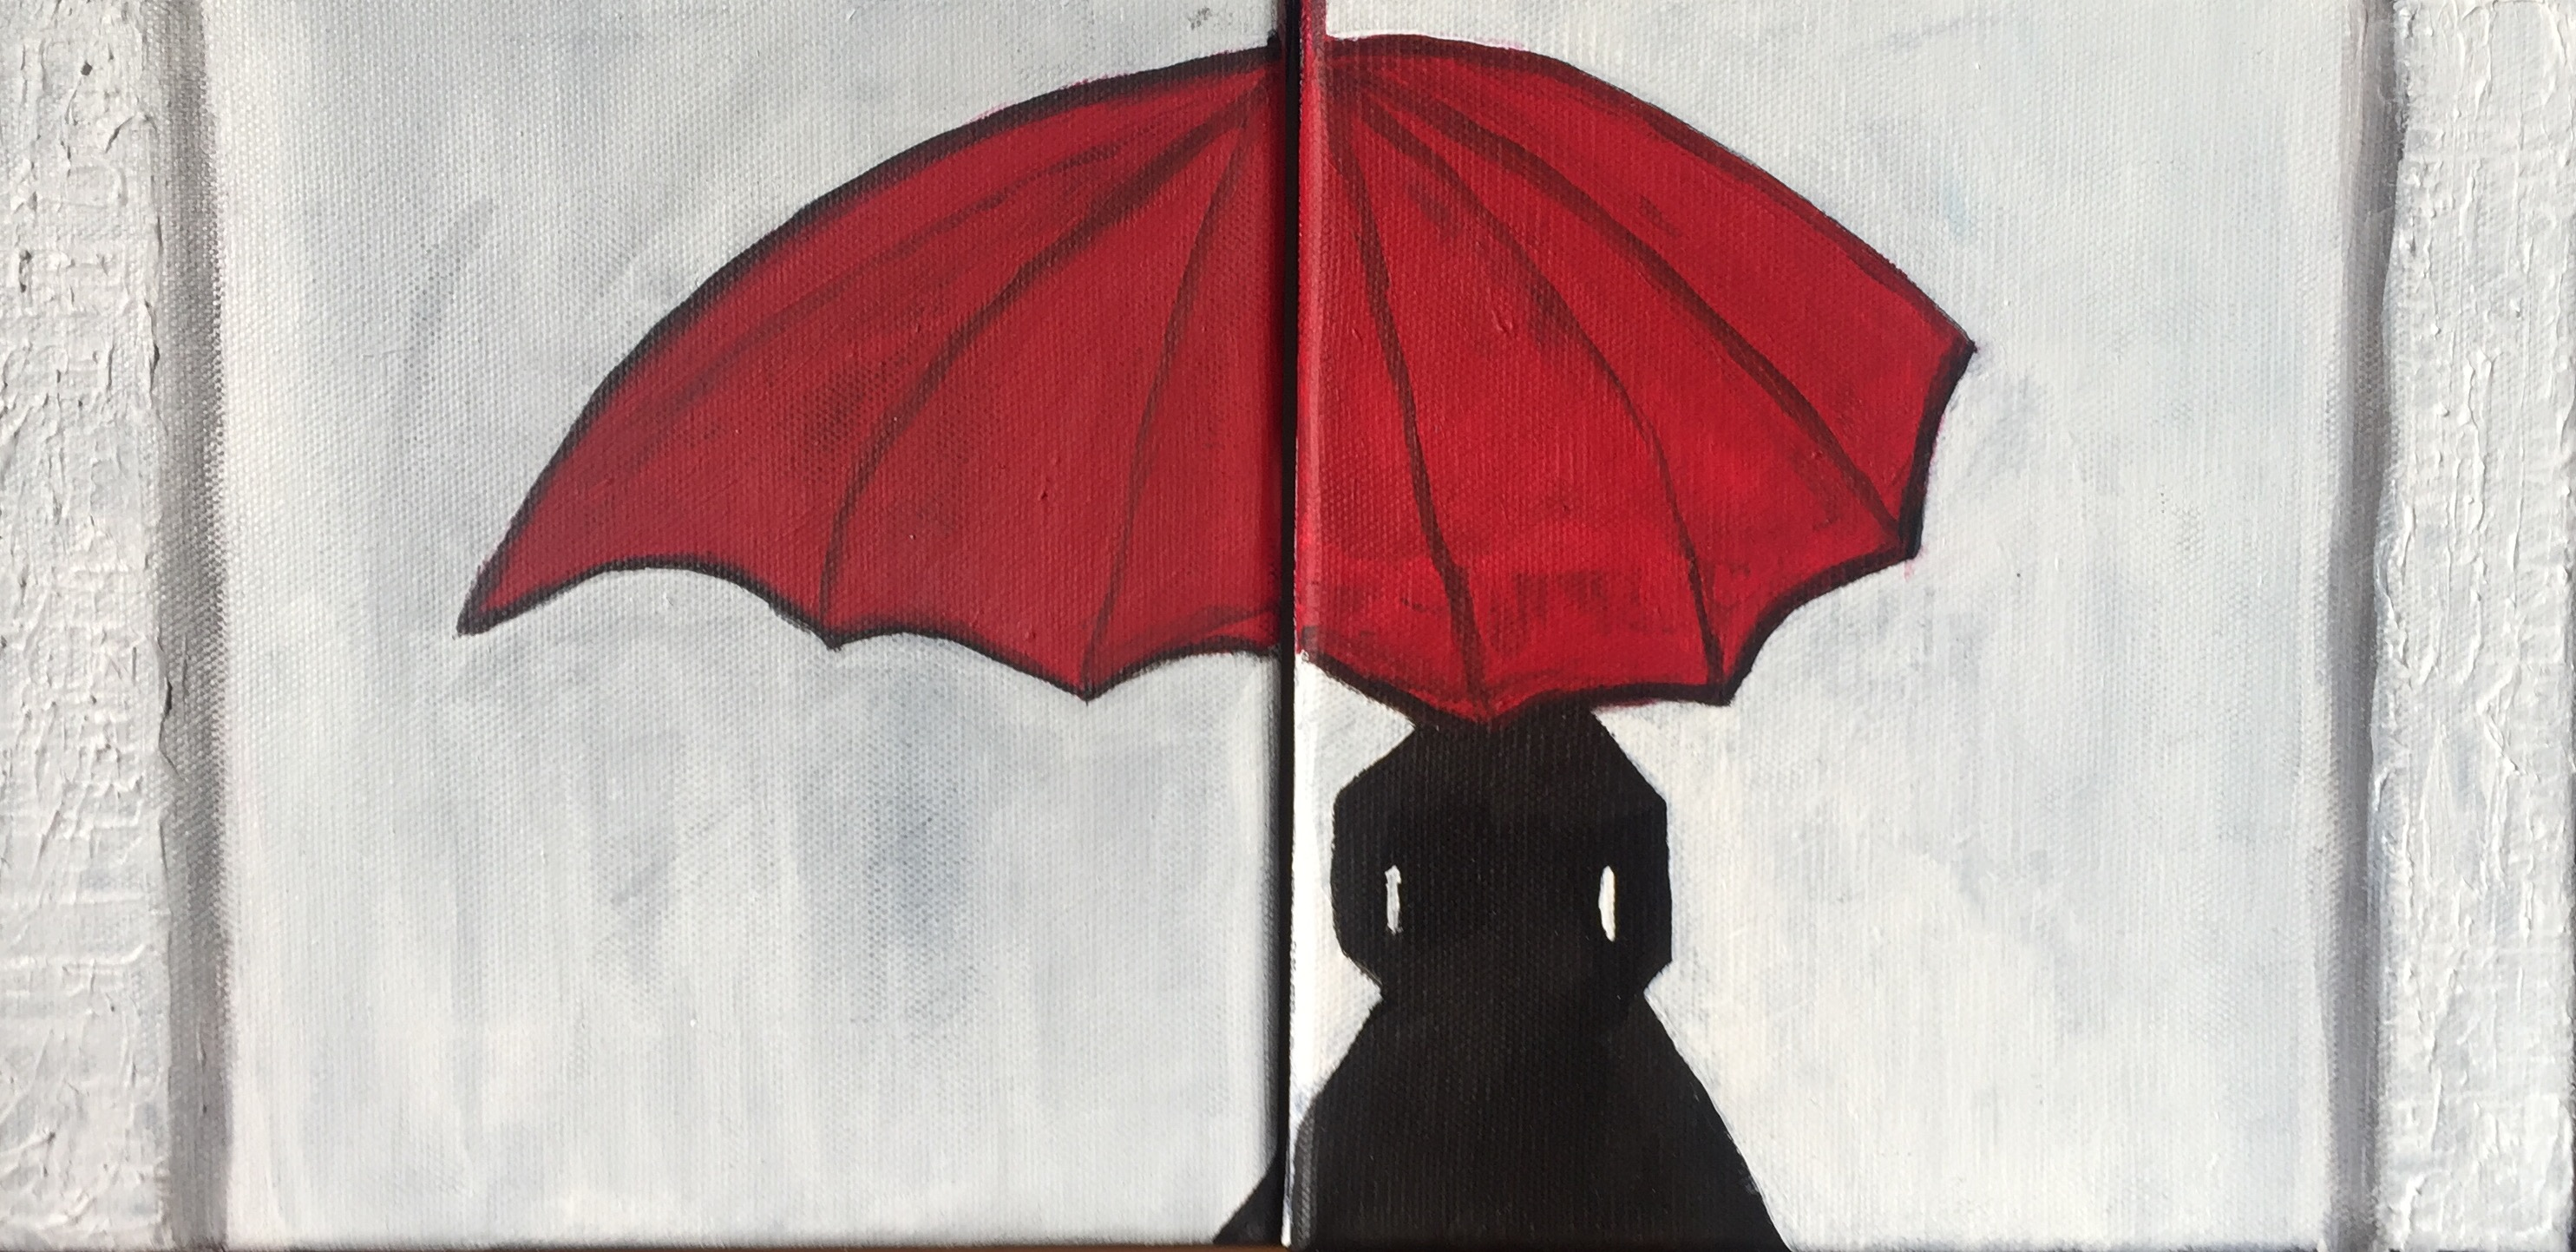 Give everyone a fair chance – paint your own picture